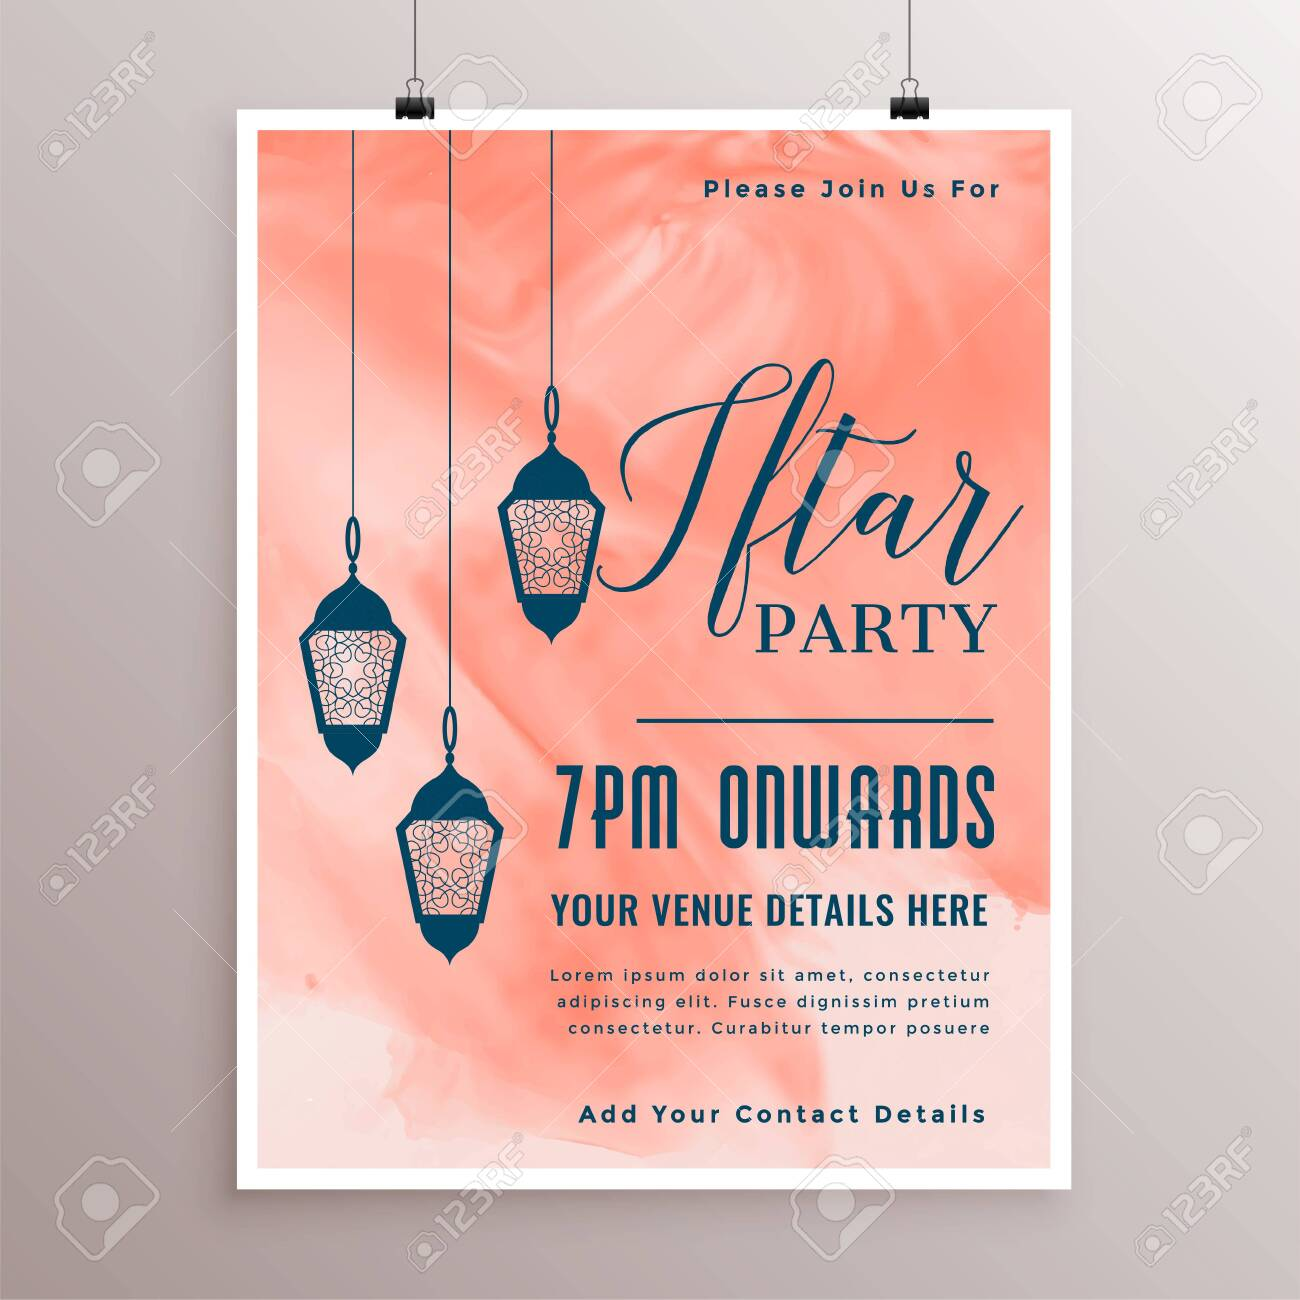 party invitation template for iftar time